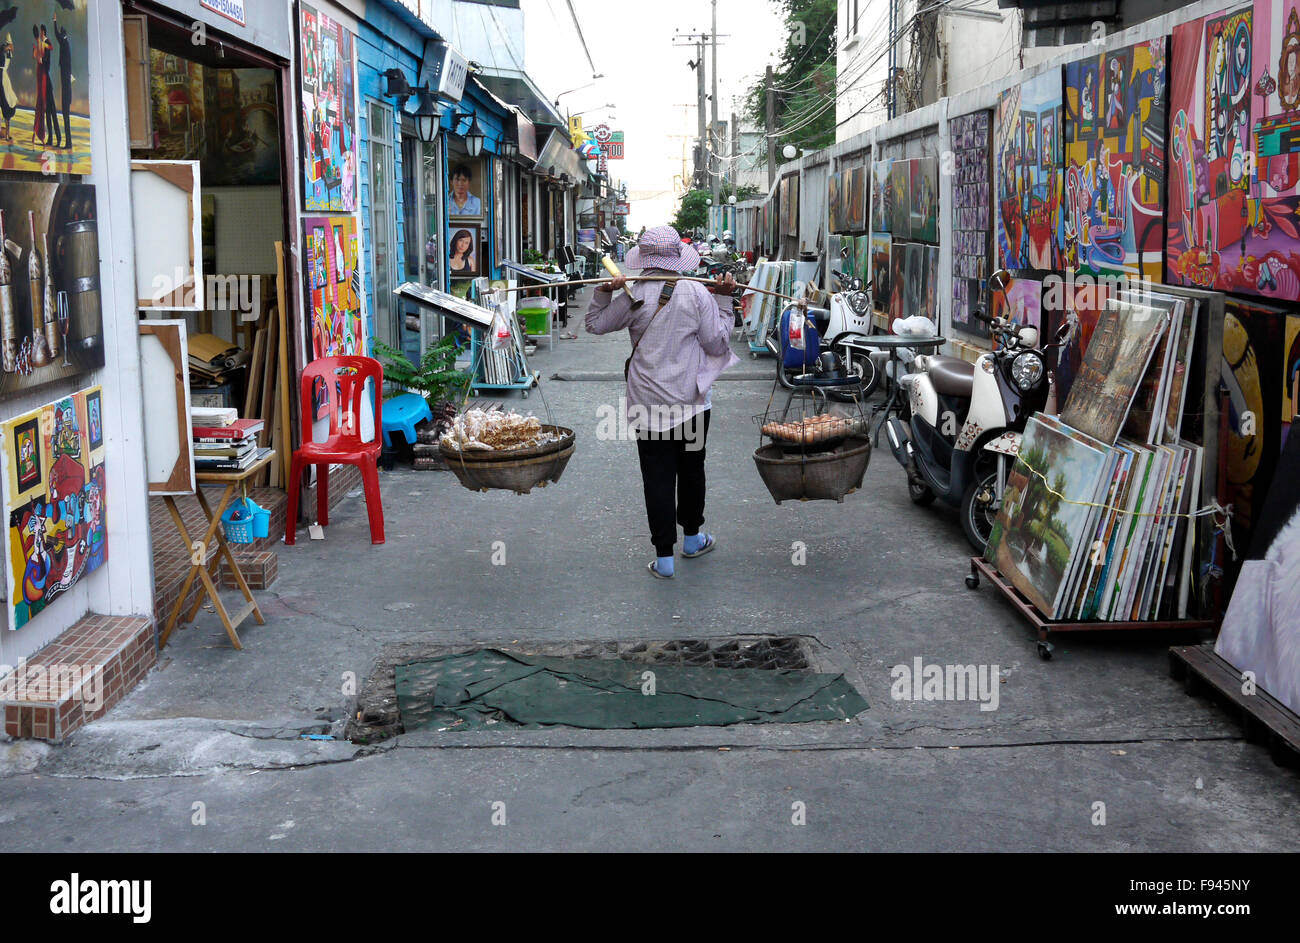 Original works of art, copies and reproductions of famous paintings and photographs for sale on Art Street Pattaya - Stock Image